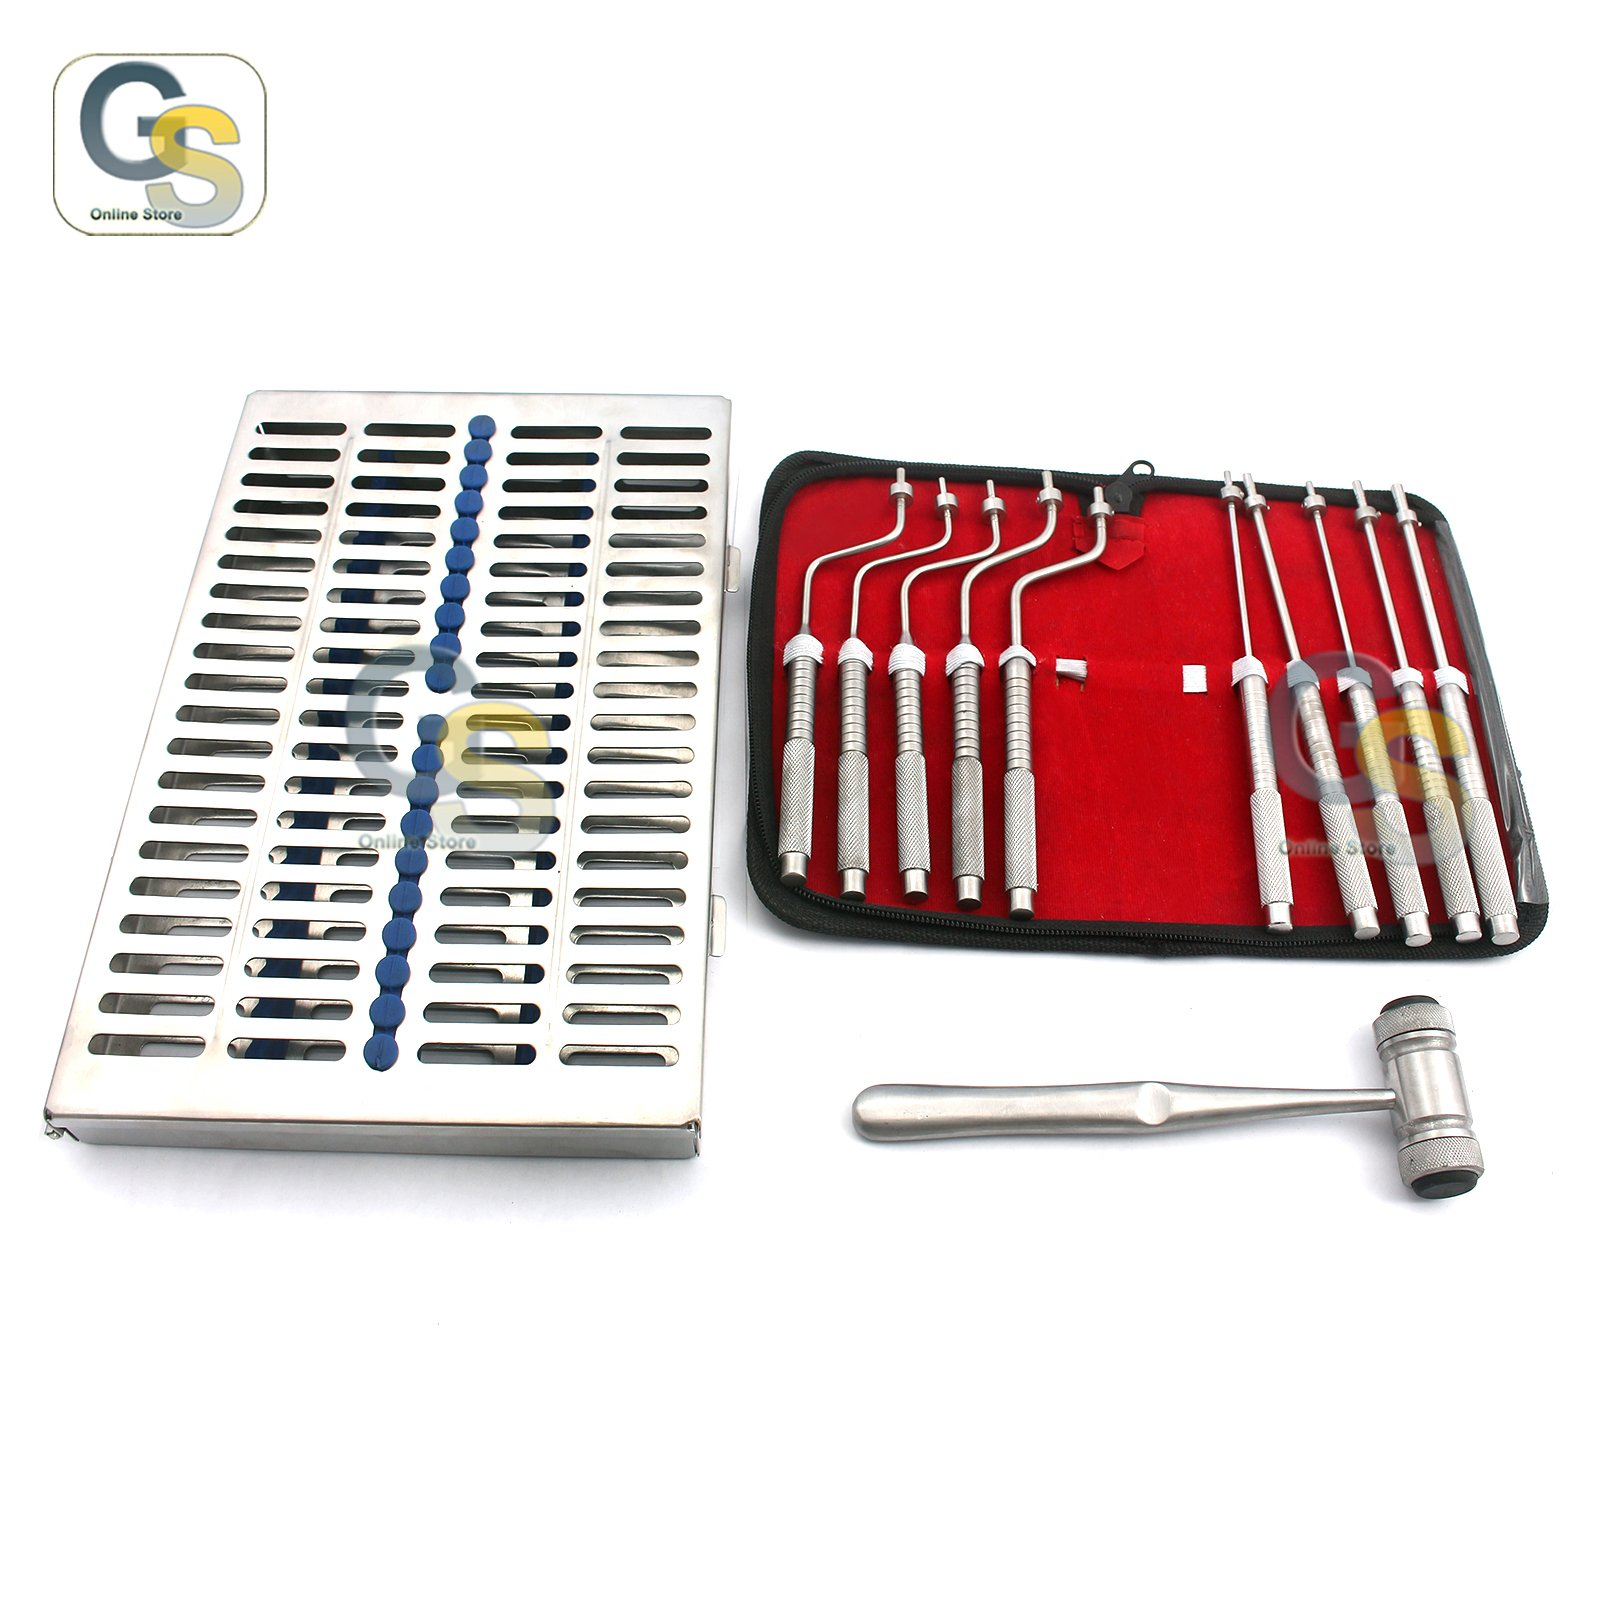 G.S NEW GERMAN GRADE SINUS LIFT OSTEOTOMES KIT STRAIGHT OFF SET CONCAVE DENTAL IMPLANT INSTRUMENT-W/STERILIZATION CASSETTES AND MALLET FREE BEST QUALITY